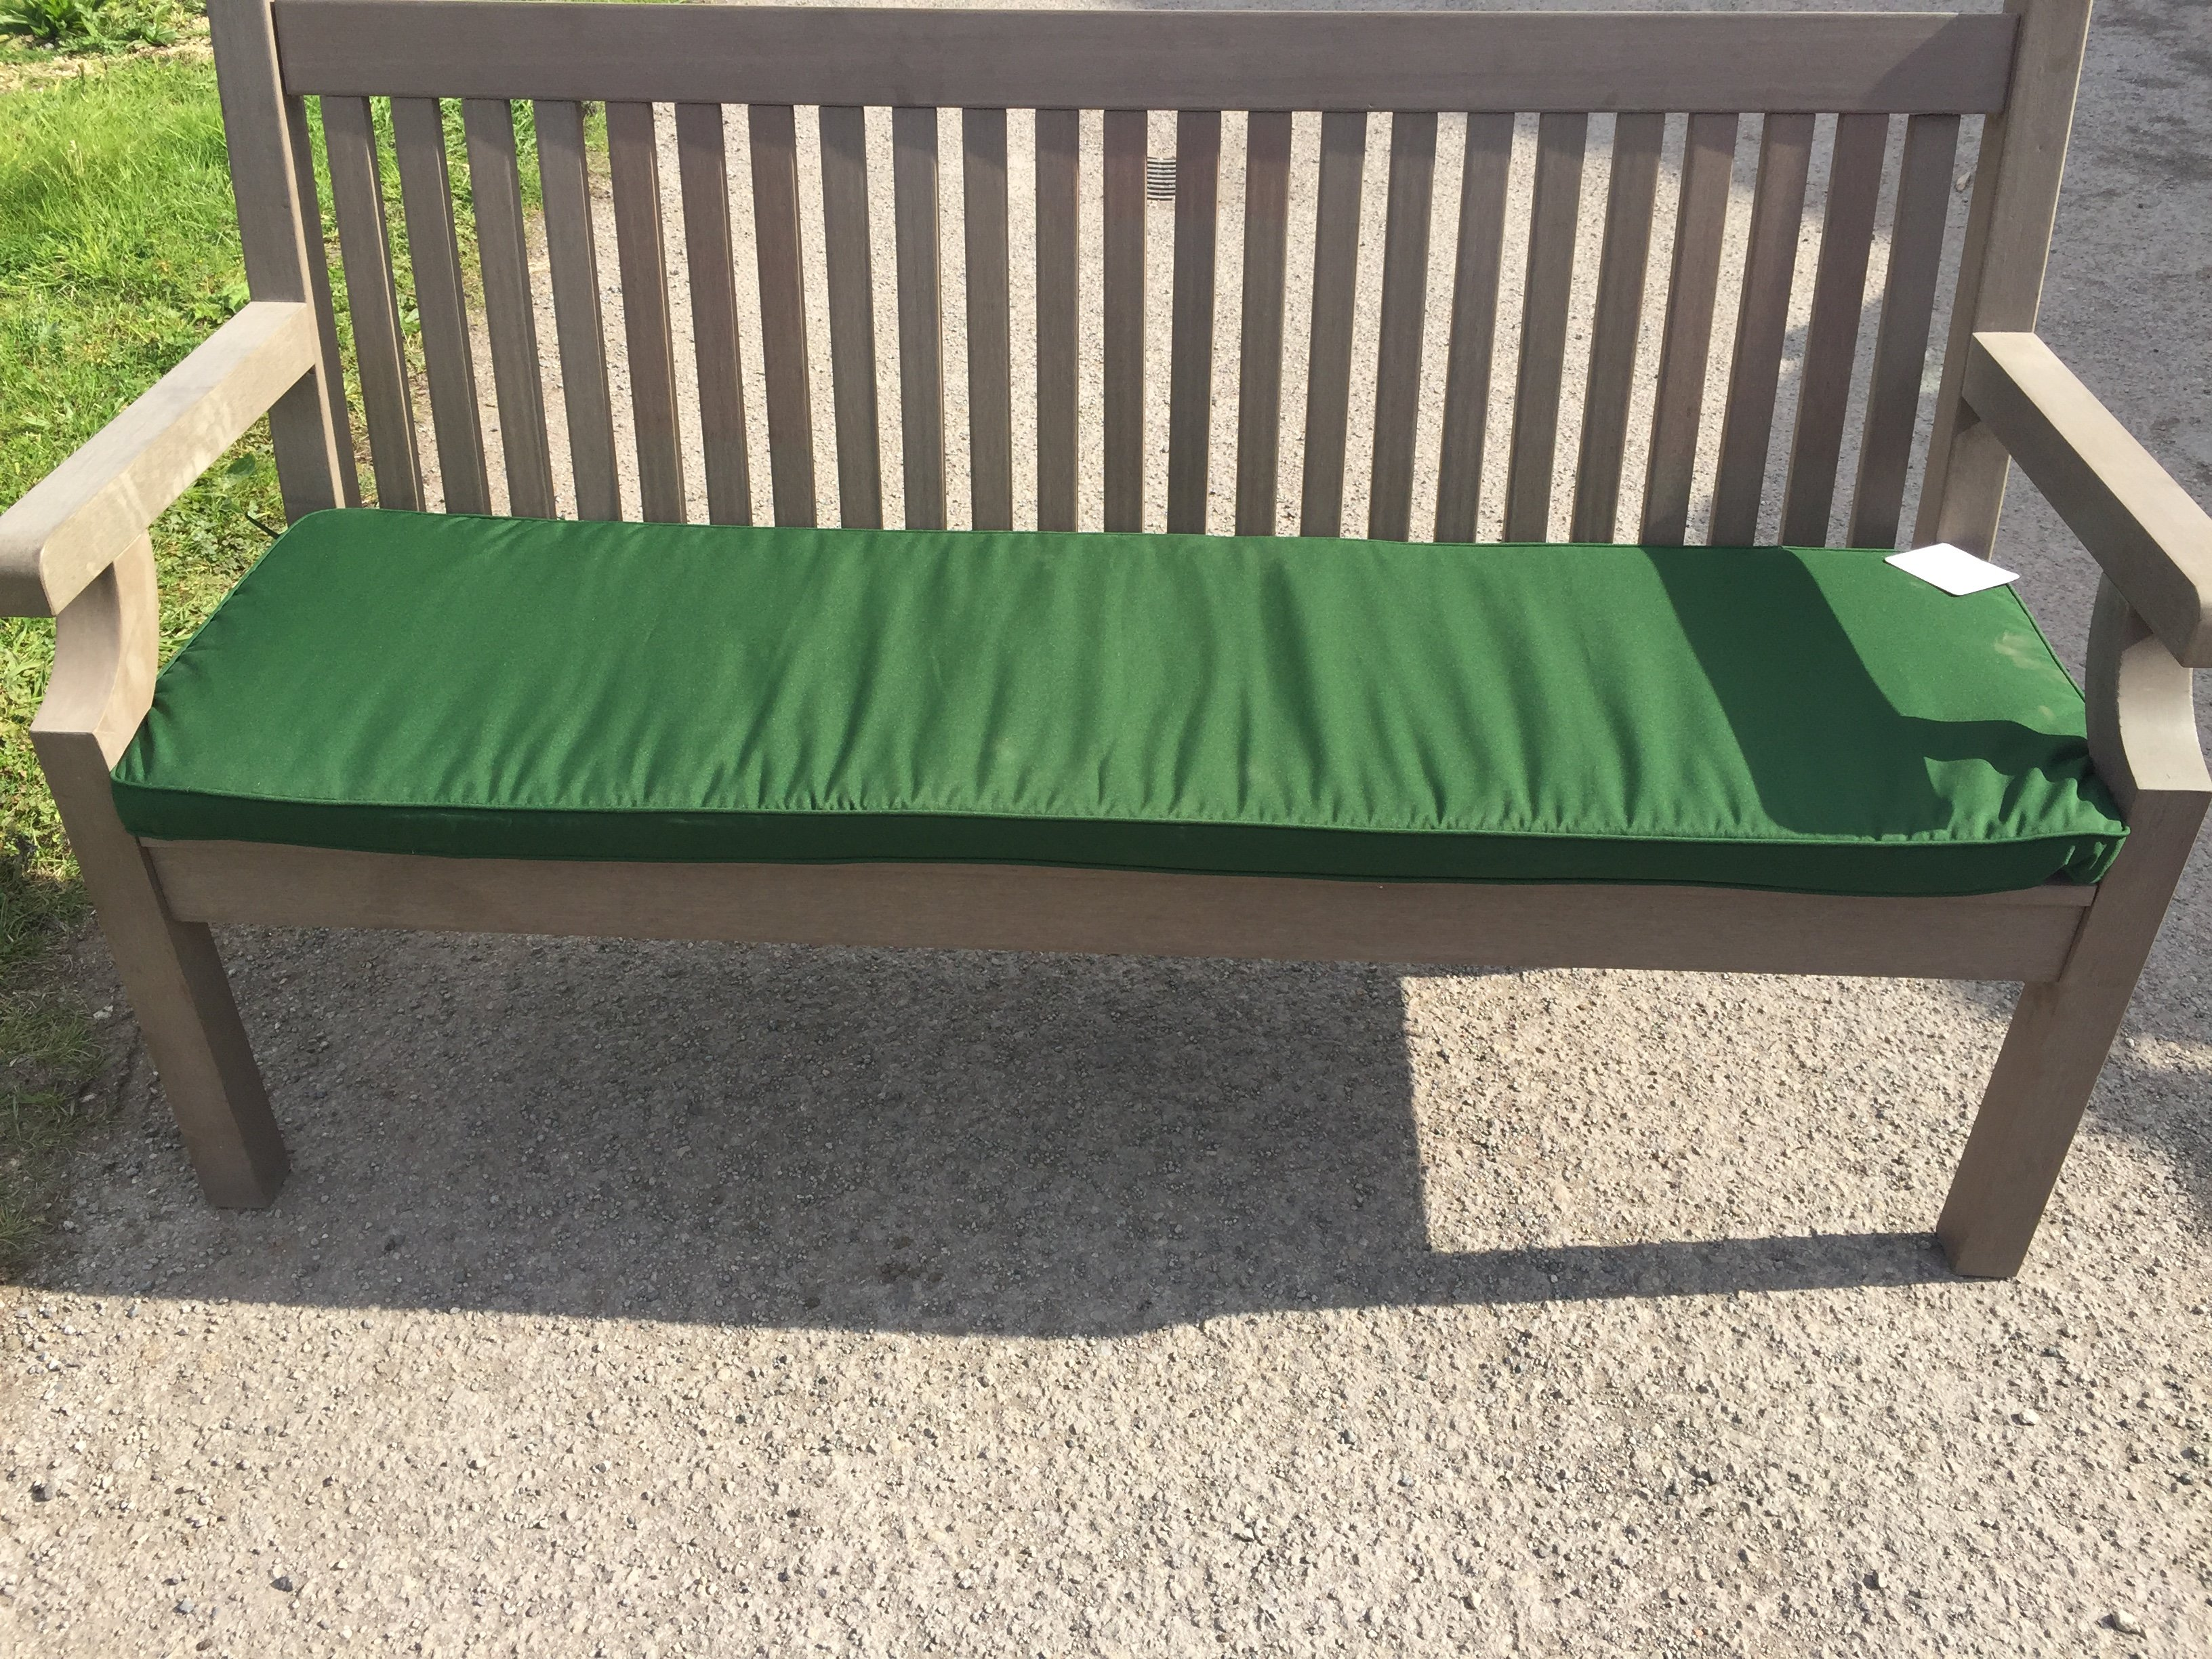 Deck amp patio furniture are often neglected when hiring a pressure - How To Clean Garden Furniture Modern Patio Outdoor How To Clean